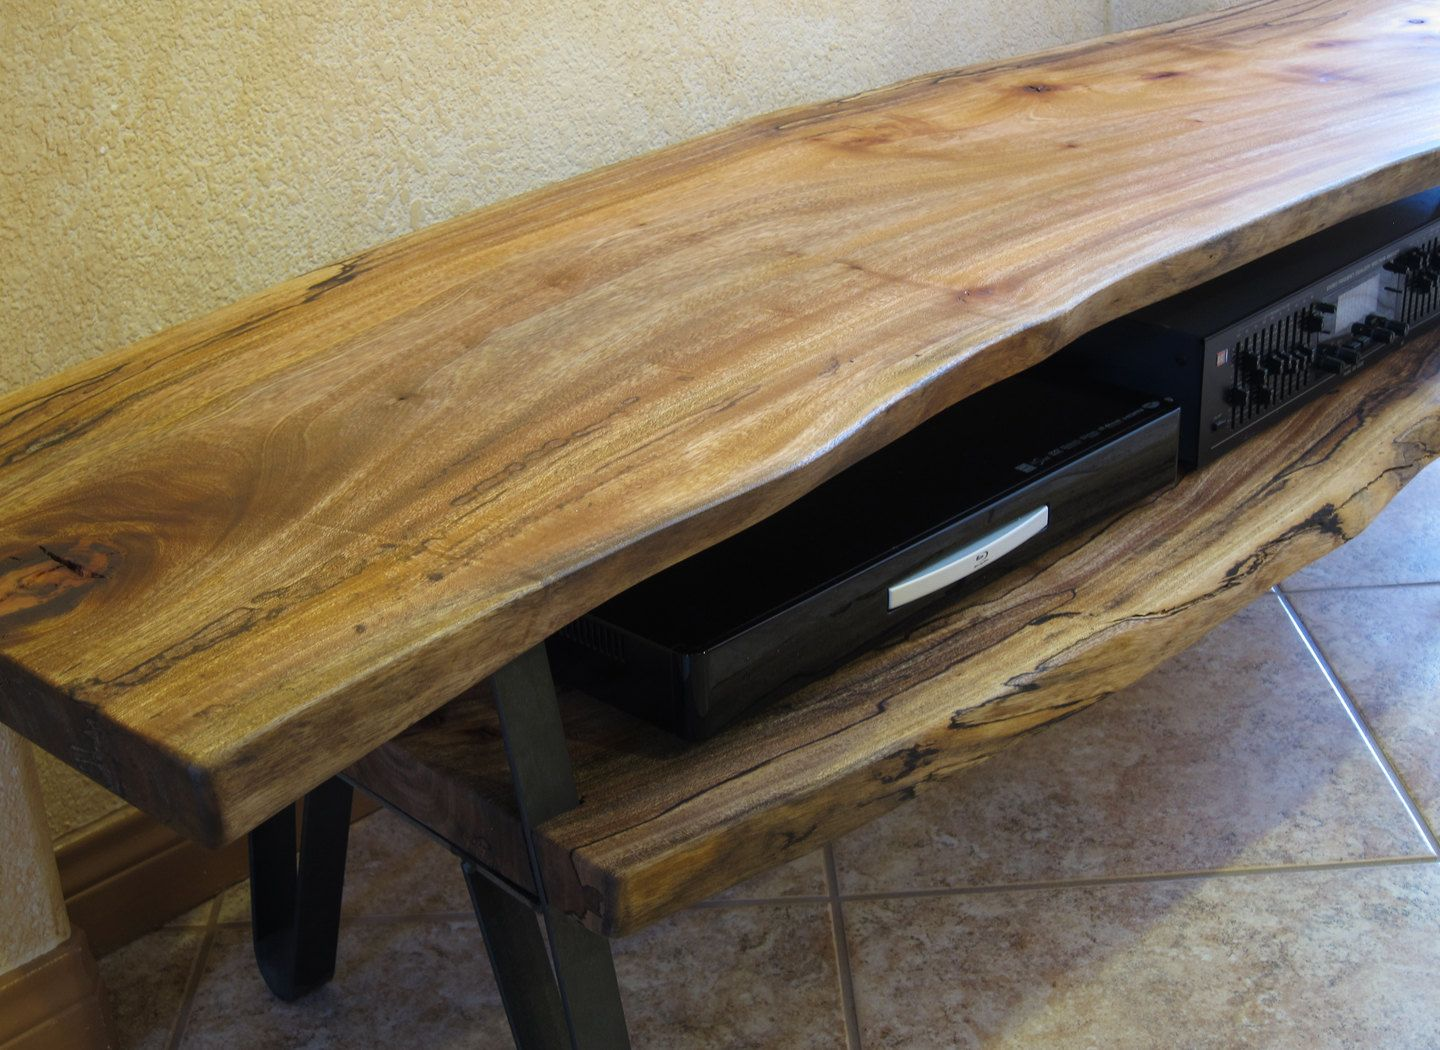 Live Edge Solid Slab Log Tv Stand By Woodwavesinc On Etsy 1 249 00 Tv Stand Room Divider Tv Stand Wood Swivel Tv Stand